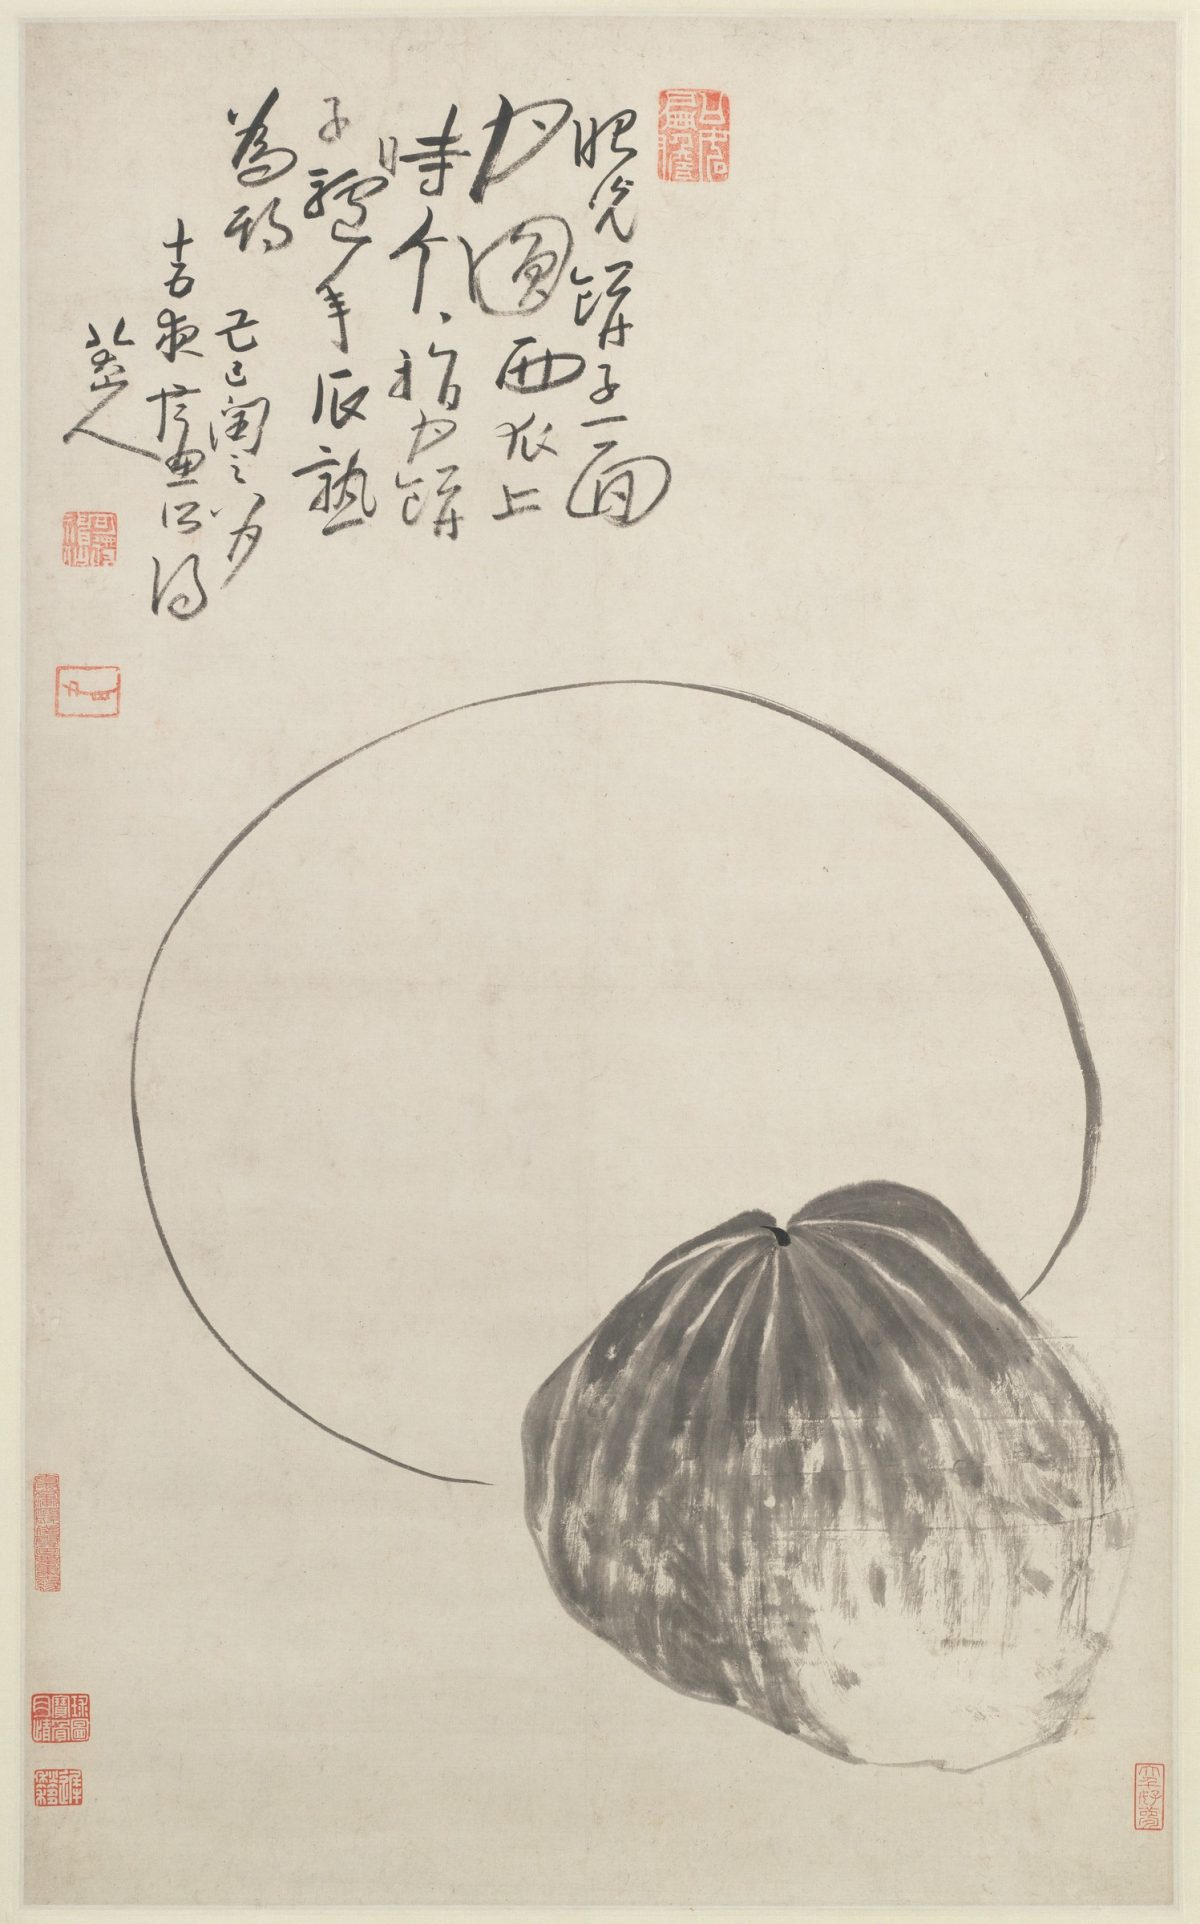 The younger brother vowed to work hard in the field in order to truly earn his melon when the time comes. (Moon and Melon; Object Number 1964.94; Harvard Art Museums/Arthur M. Sackler Museum, Gift of Earl Morse, Harvard Law School, Class of 1930; Copyright President and Fellows of Harvard College)